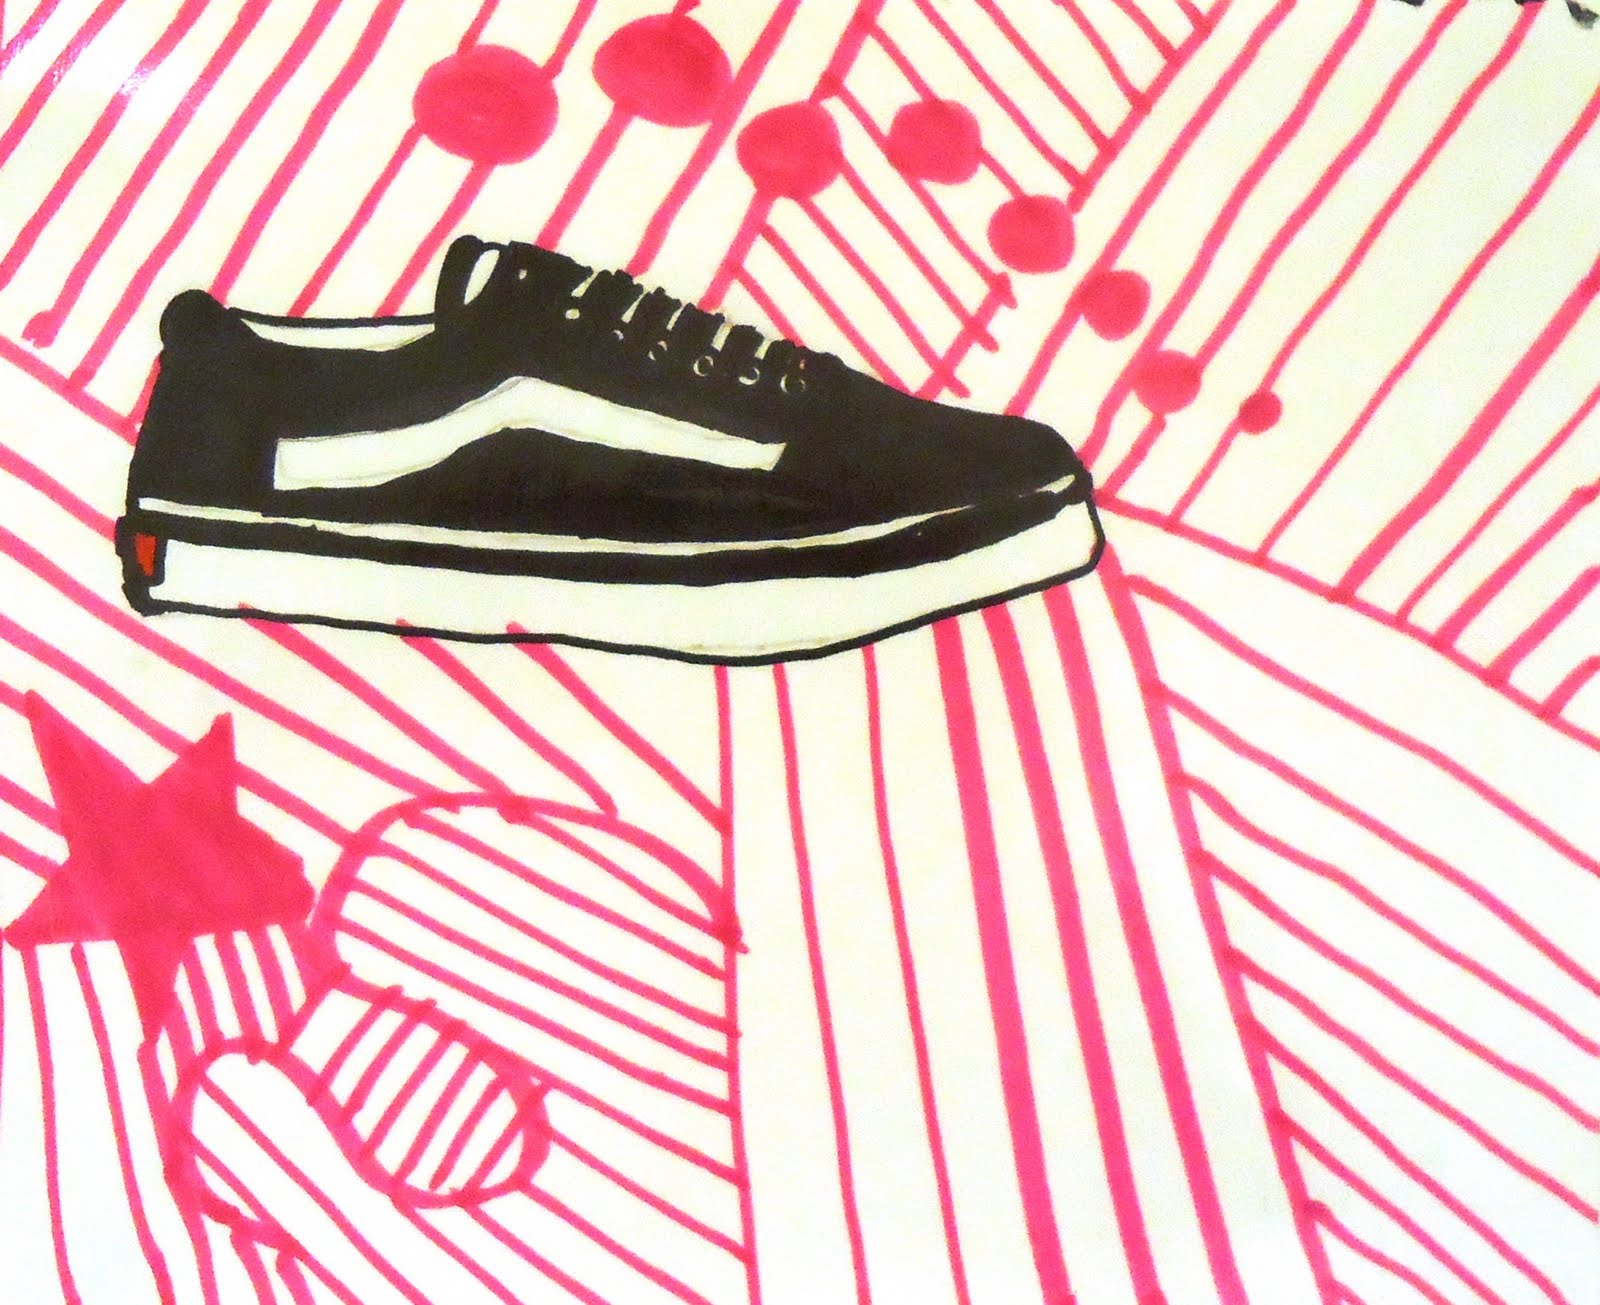 Contour Line Drawing Shoes Lesson Plan : The smartteacher resource contour line dream shoes